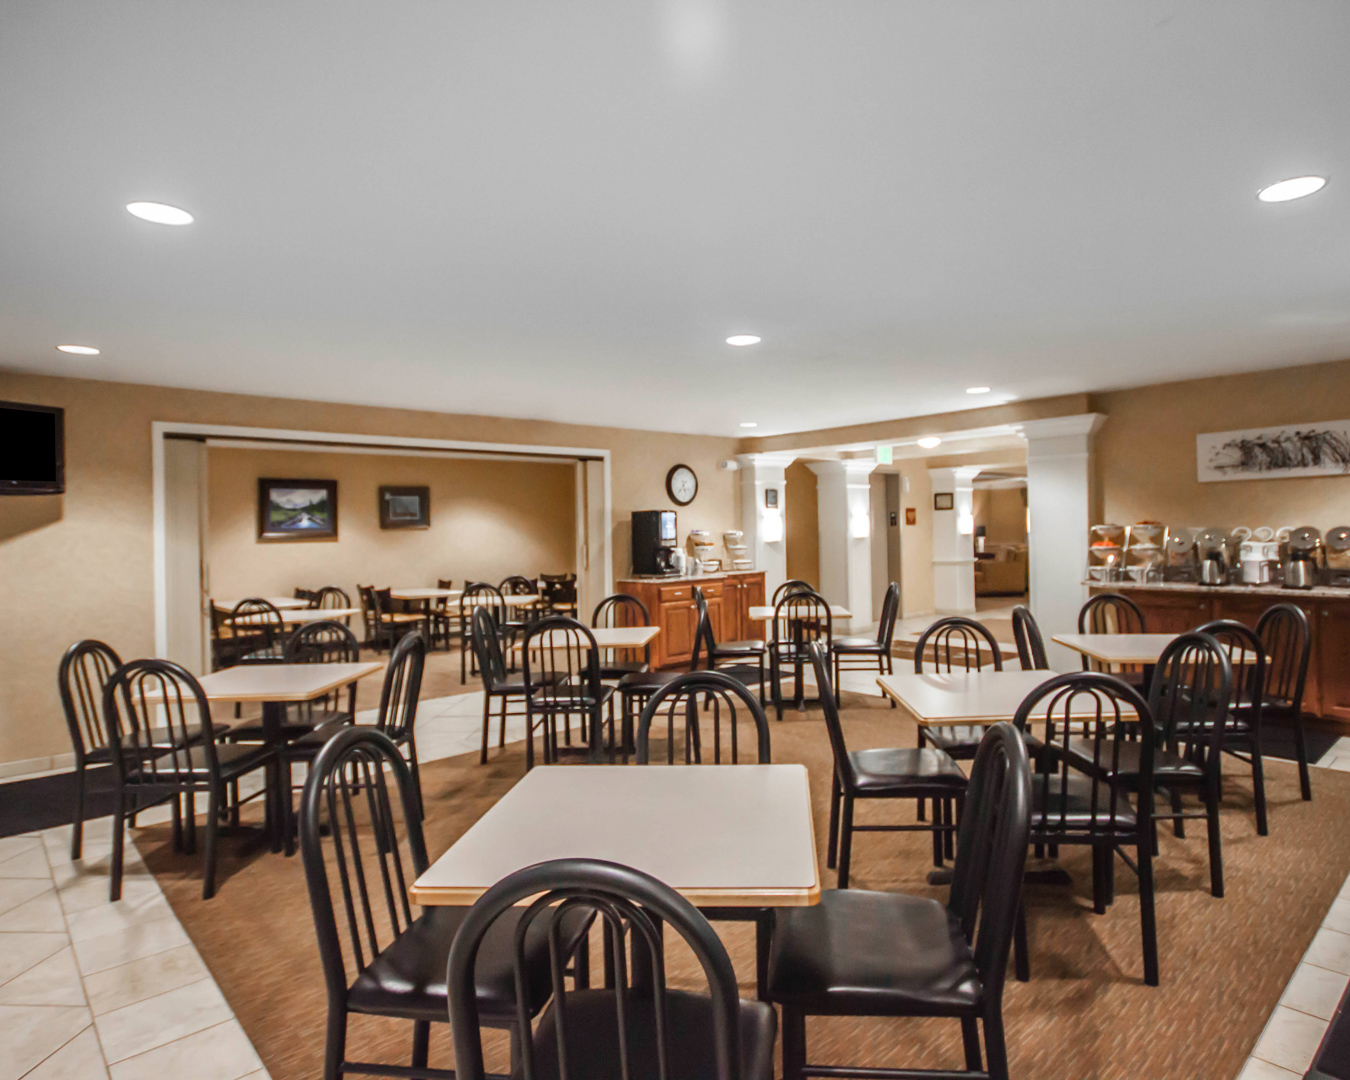 sofa mart idaho falls best affordable sleeper sofas sleep inn and suites coupons near me in 8coupons